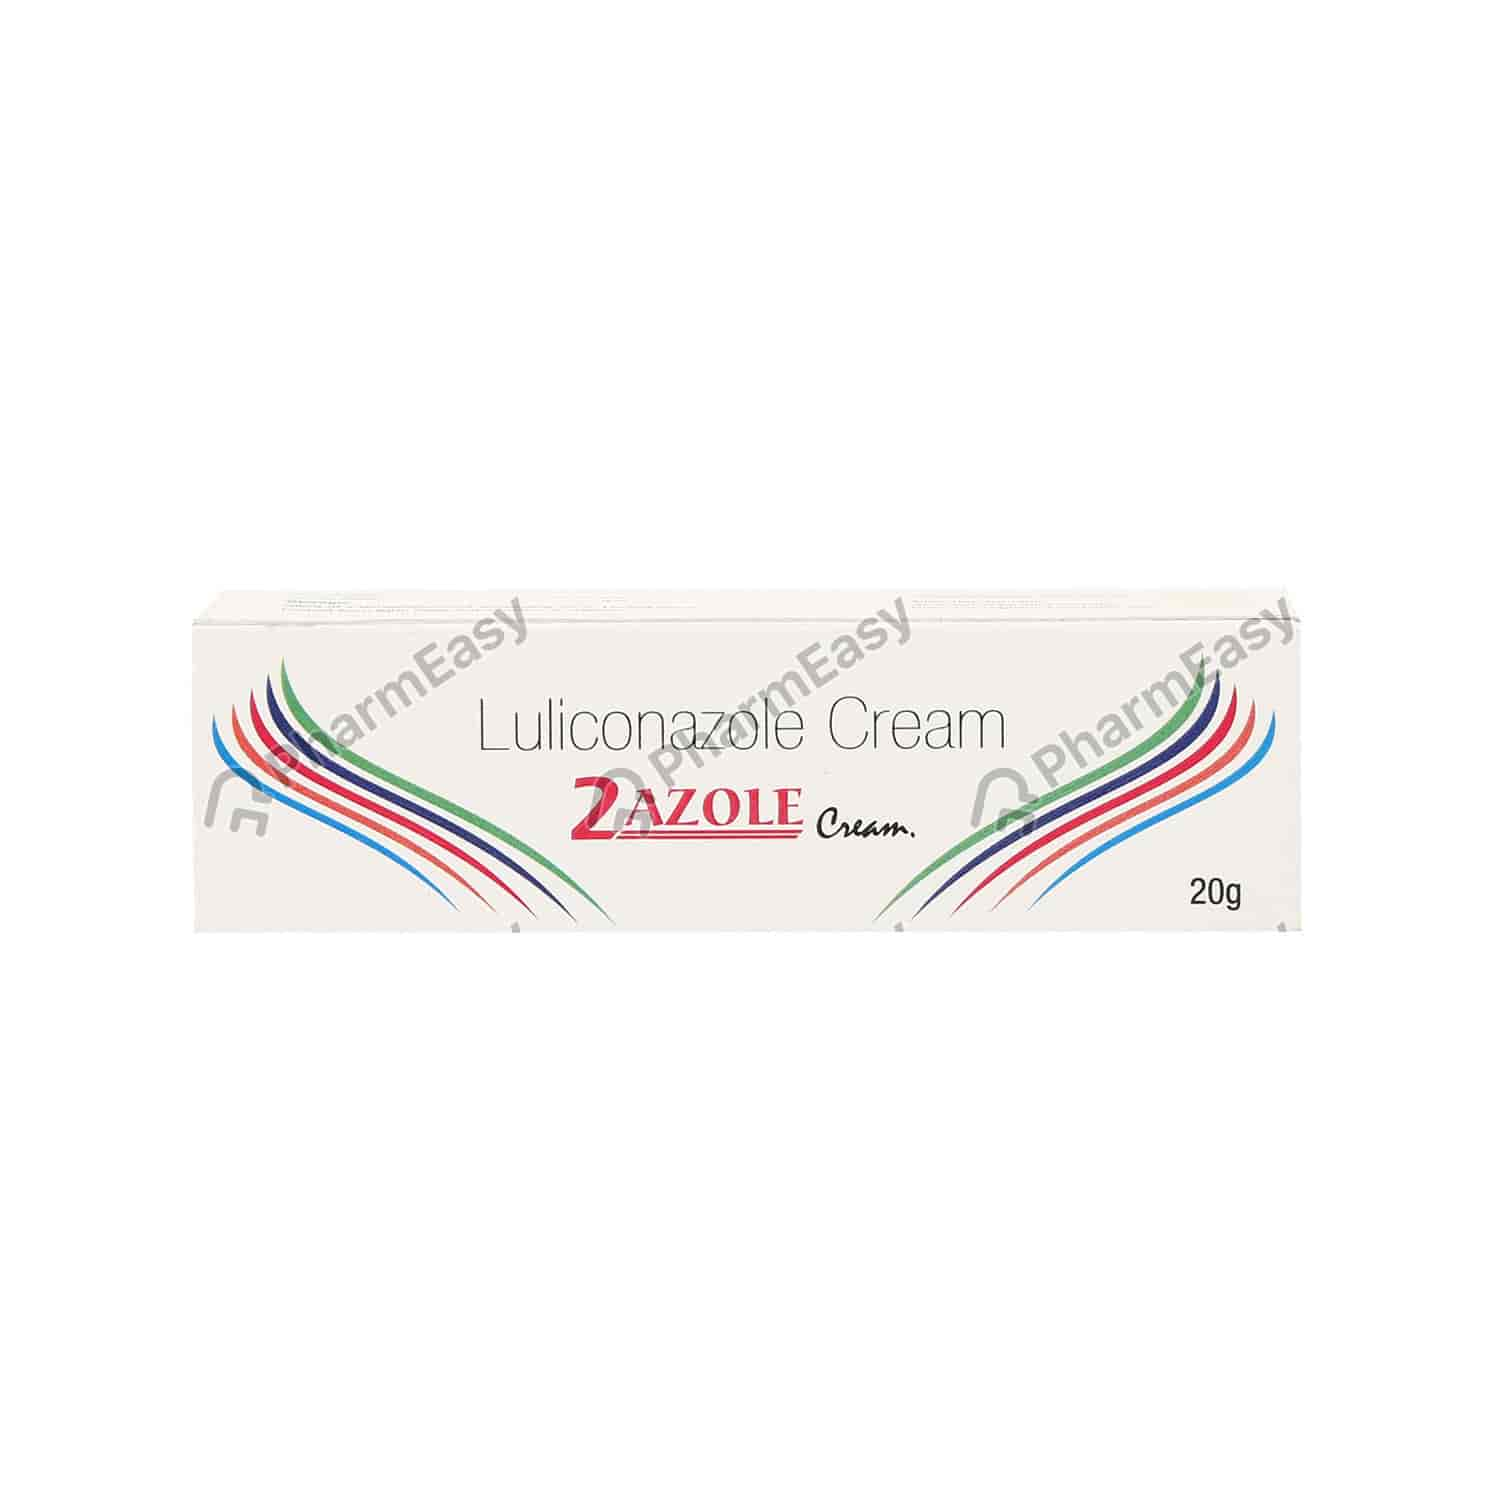 2 Azole Cream 20gm